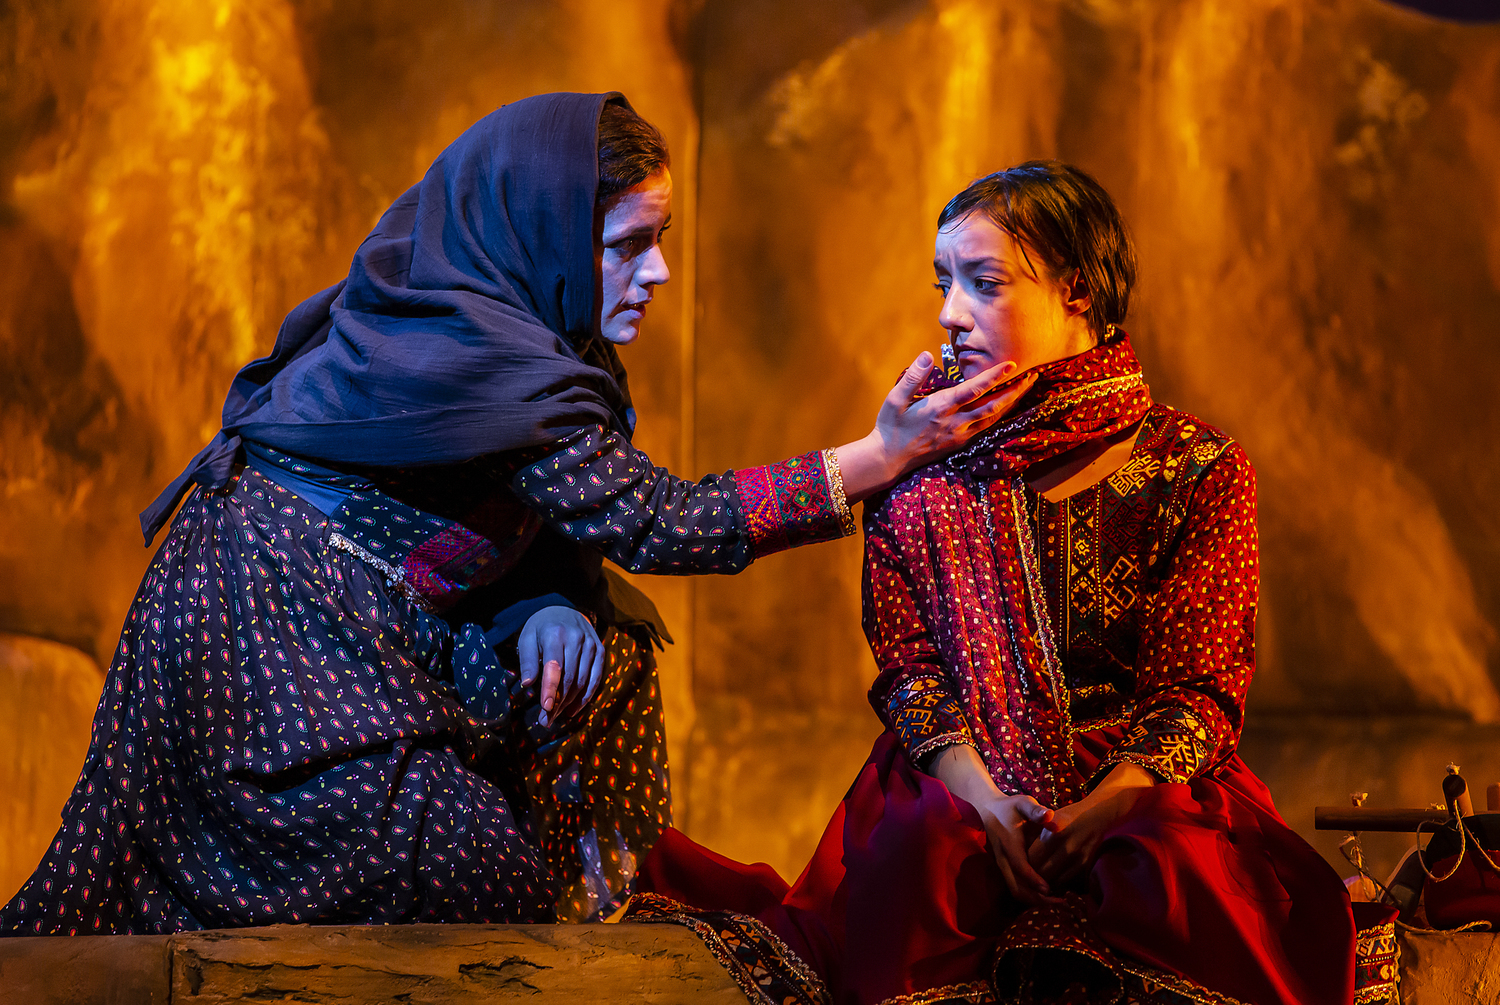 BWW Review: A THOUSAND SPLENDID SUNS, Nuffield Southampton Theatres